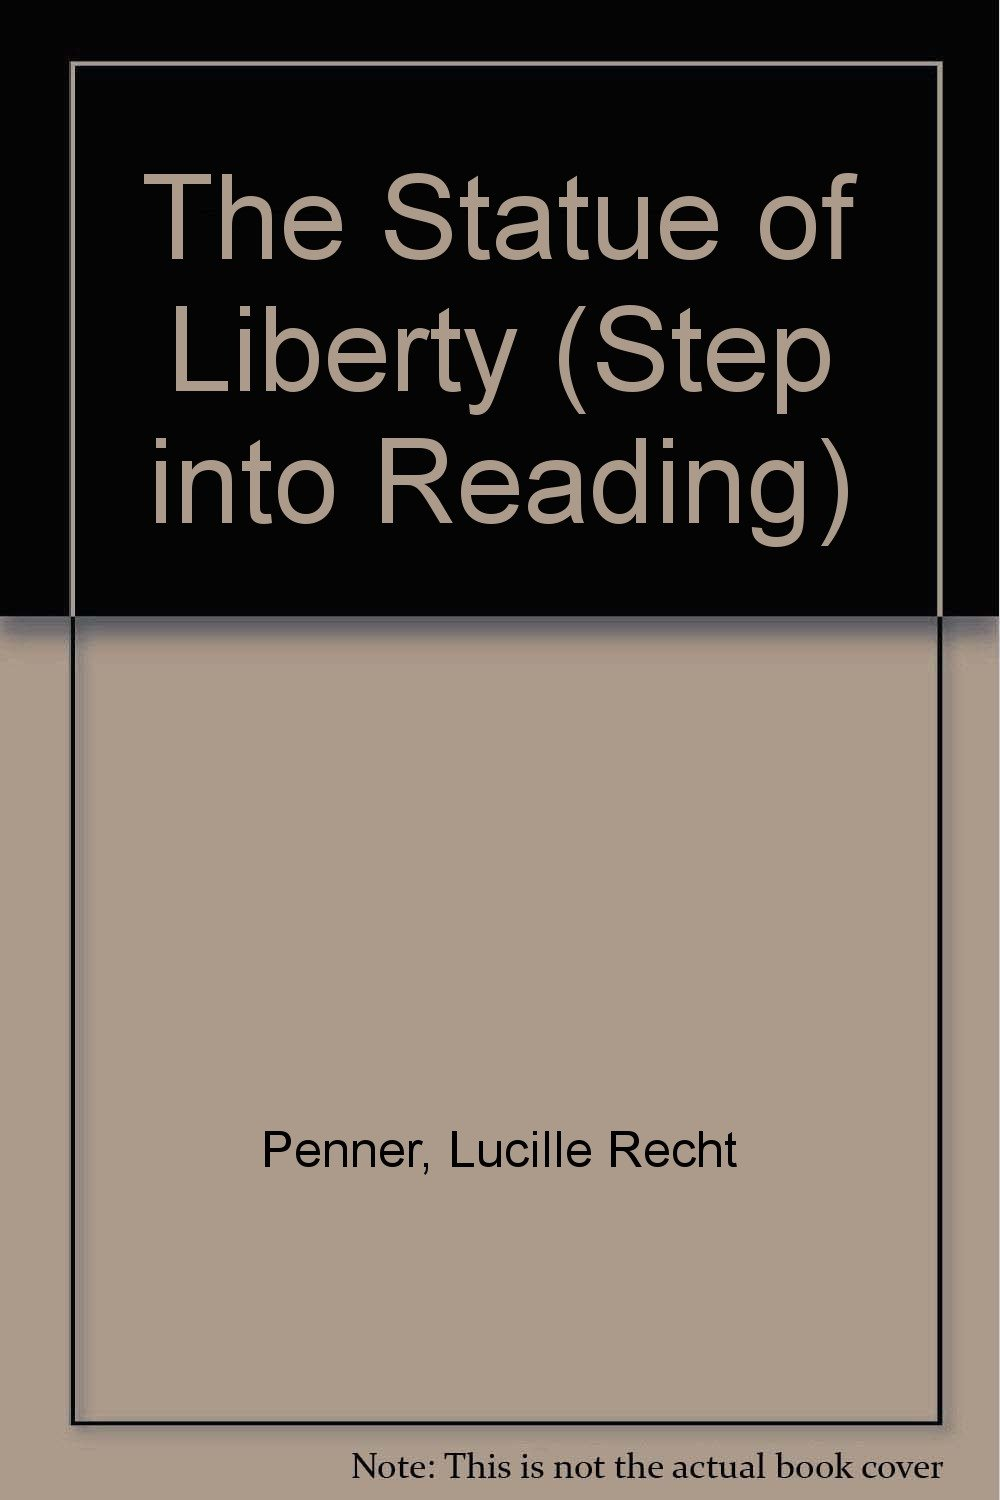 Buy The Statue of Liberty (Step into Reading) Book Online at Low Prices in  India   The Statue of Liberty (Step into Reading) Reviews & Ratings -  Amazon.in